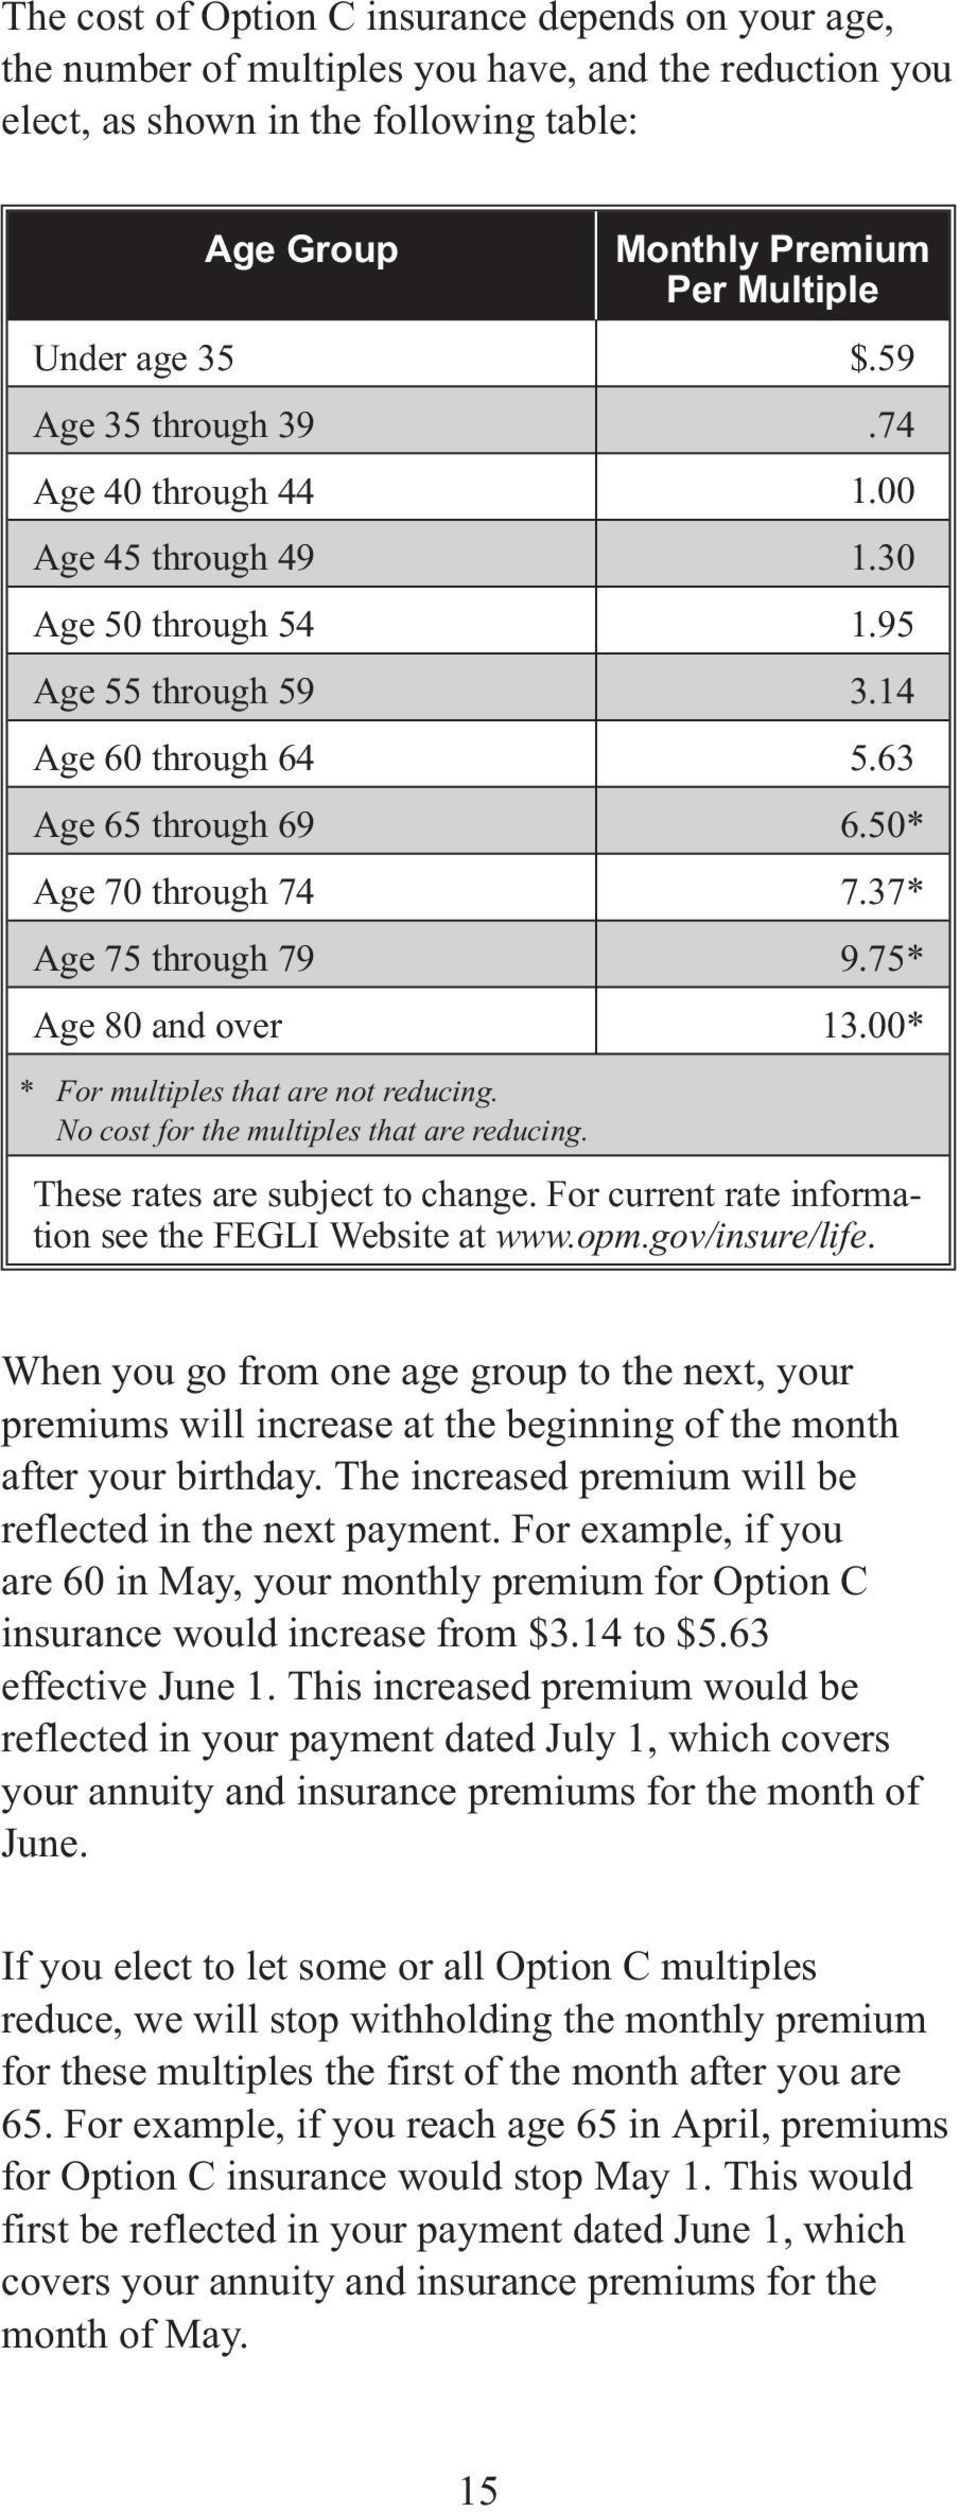 37* Age 75 through 79 9.75* Age 80 and over 13.00* * For multiples that are not reducing. No cost for the multiples that are reducing. These rates are subject to change.